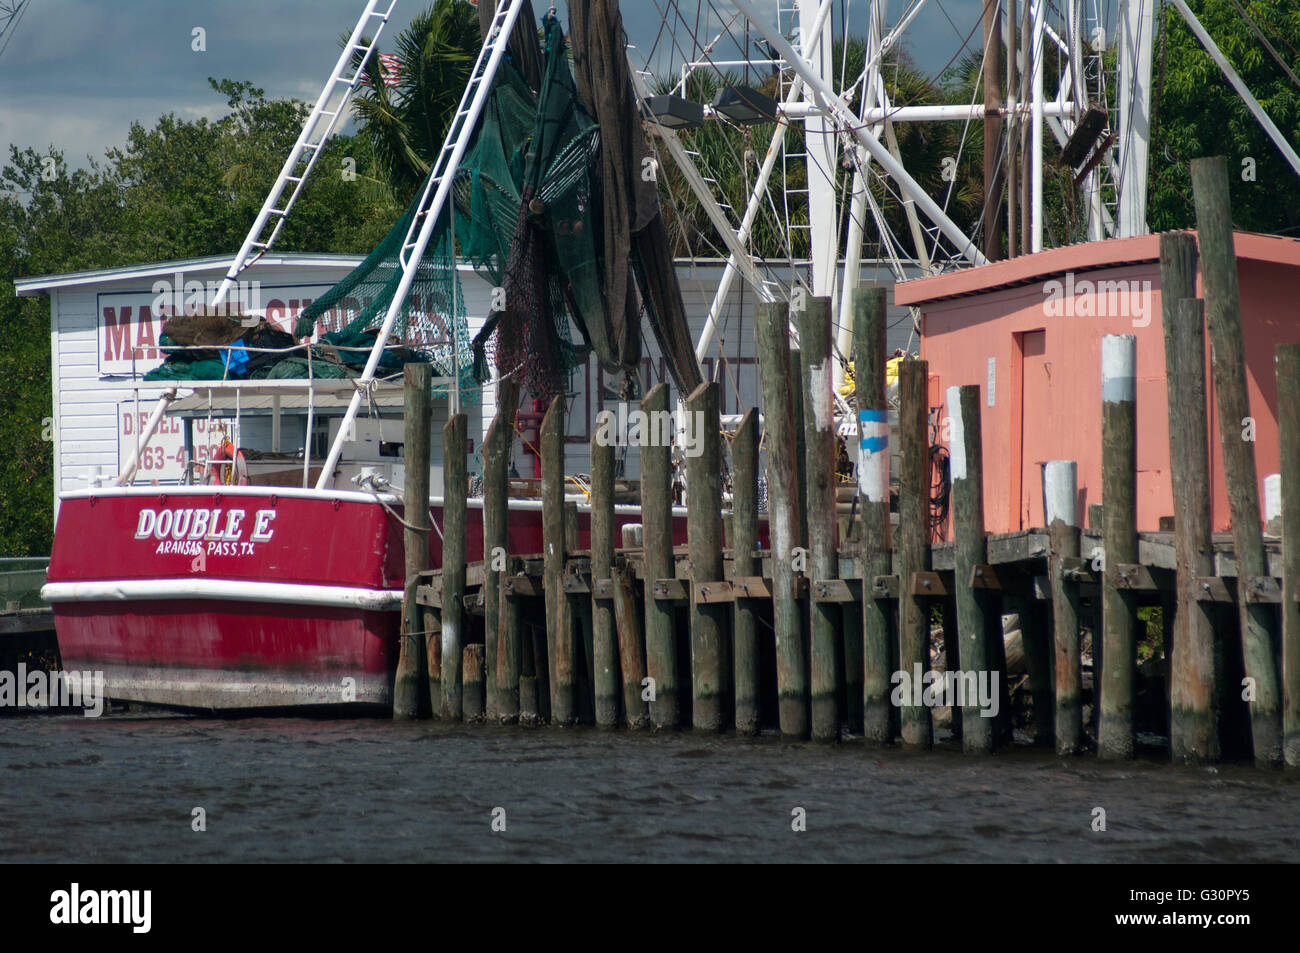 A commercial fishing vessel is moored near a rustic dock in a marina in Fort Myers Beach, Florida, USA. - Stock Image